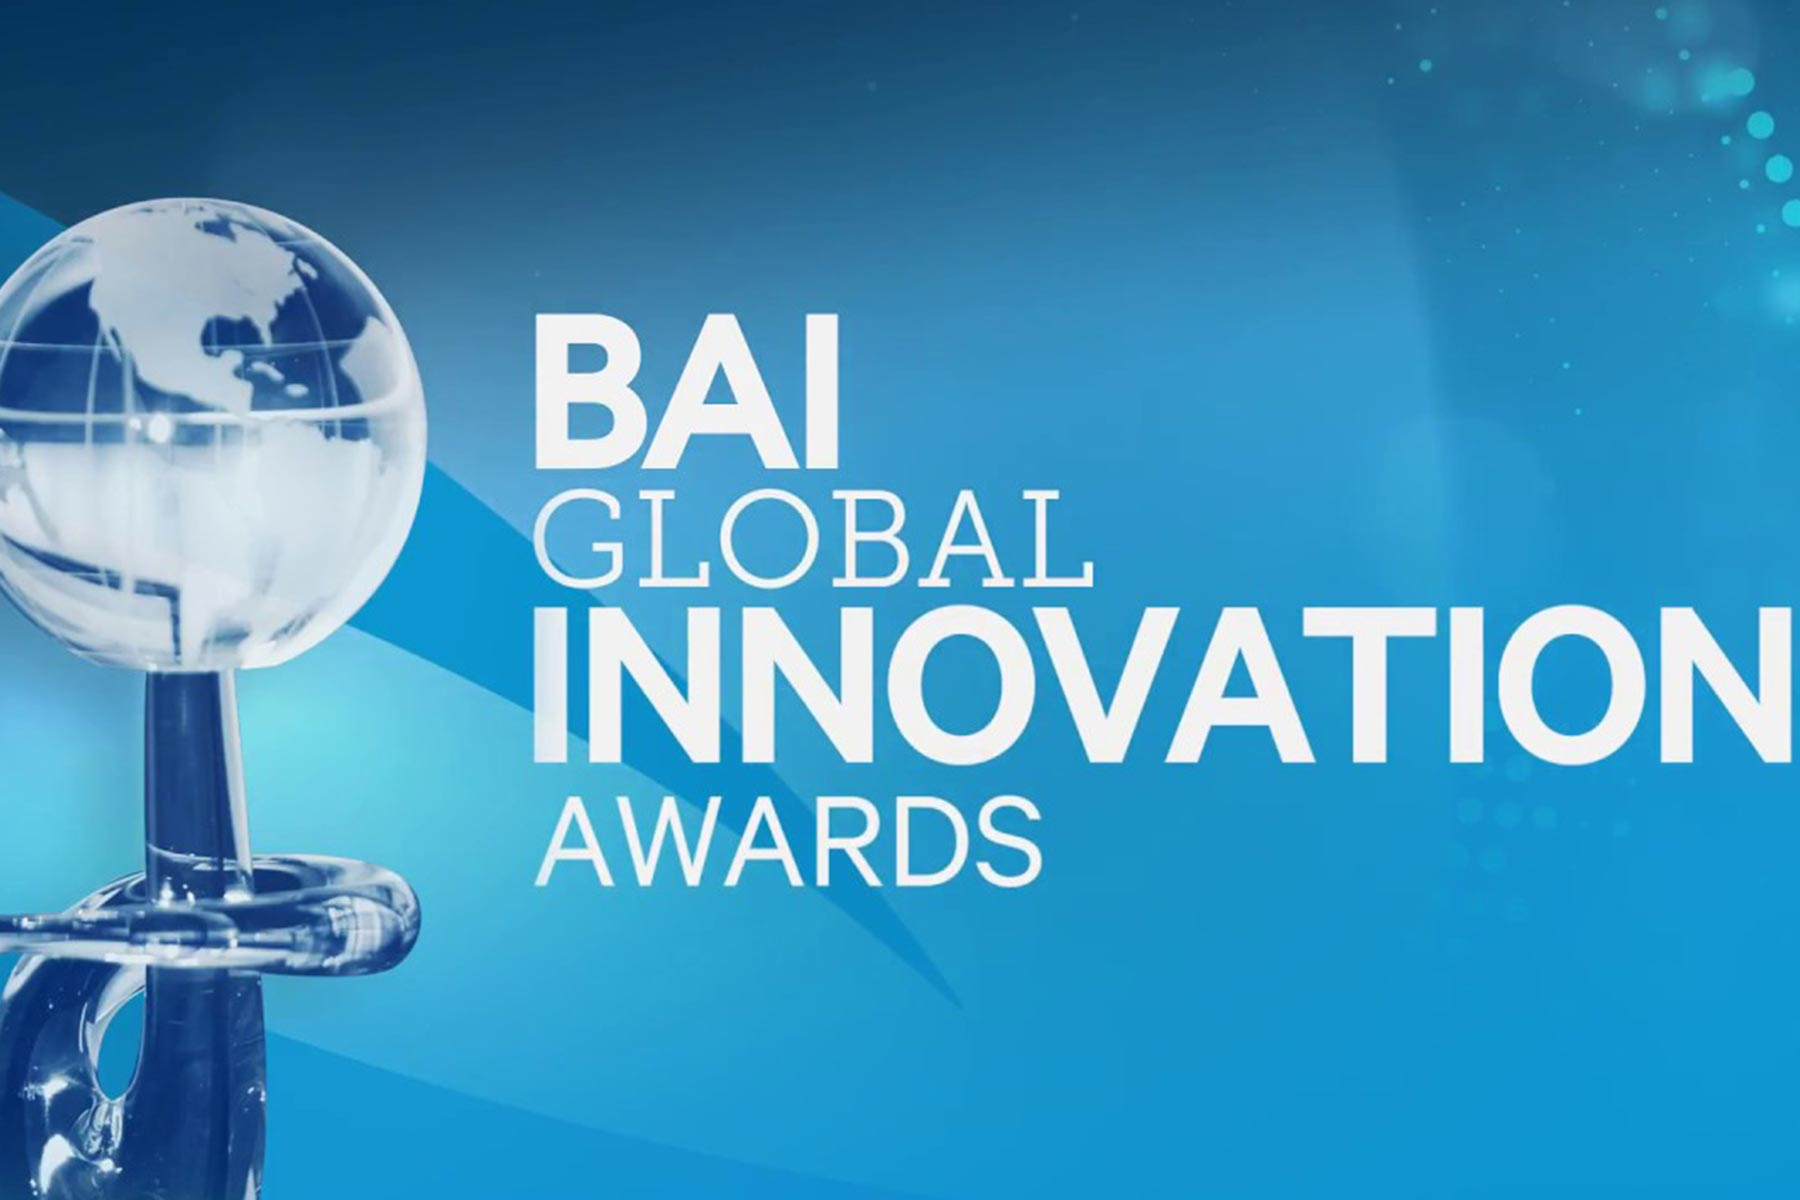 BAI Global Innovation Awards